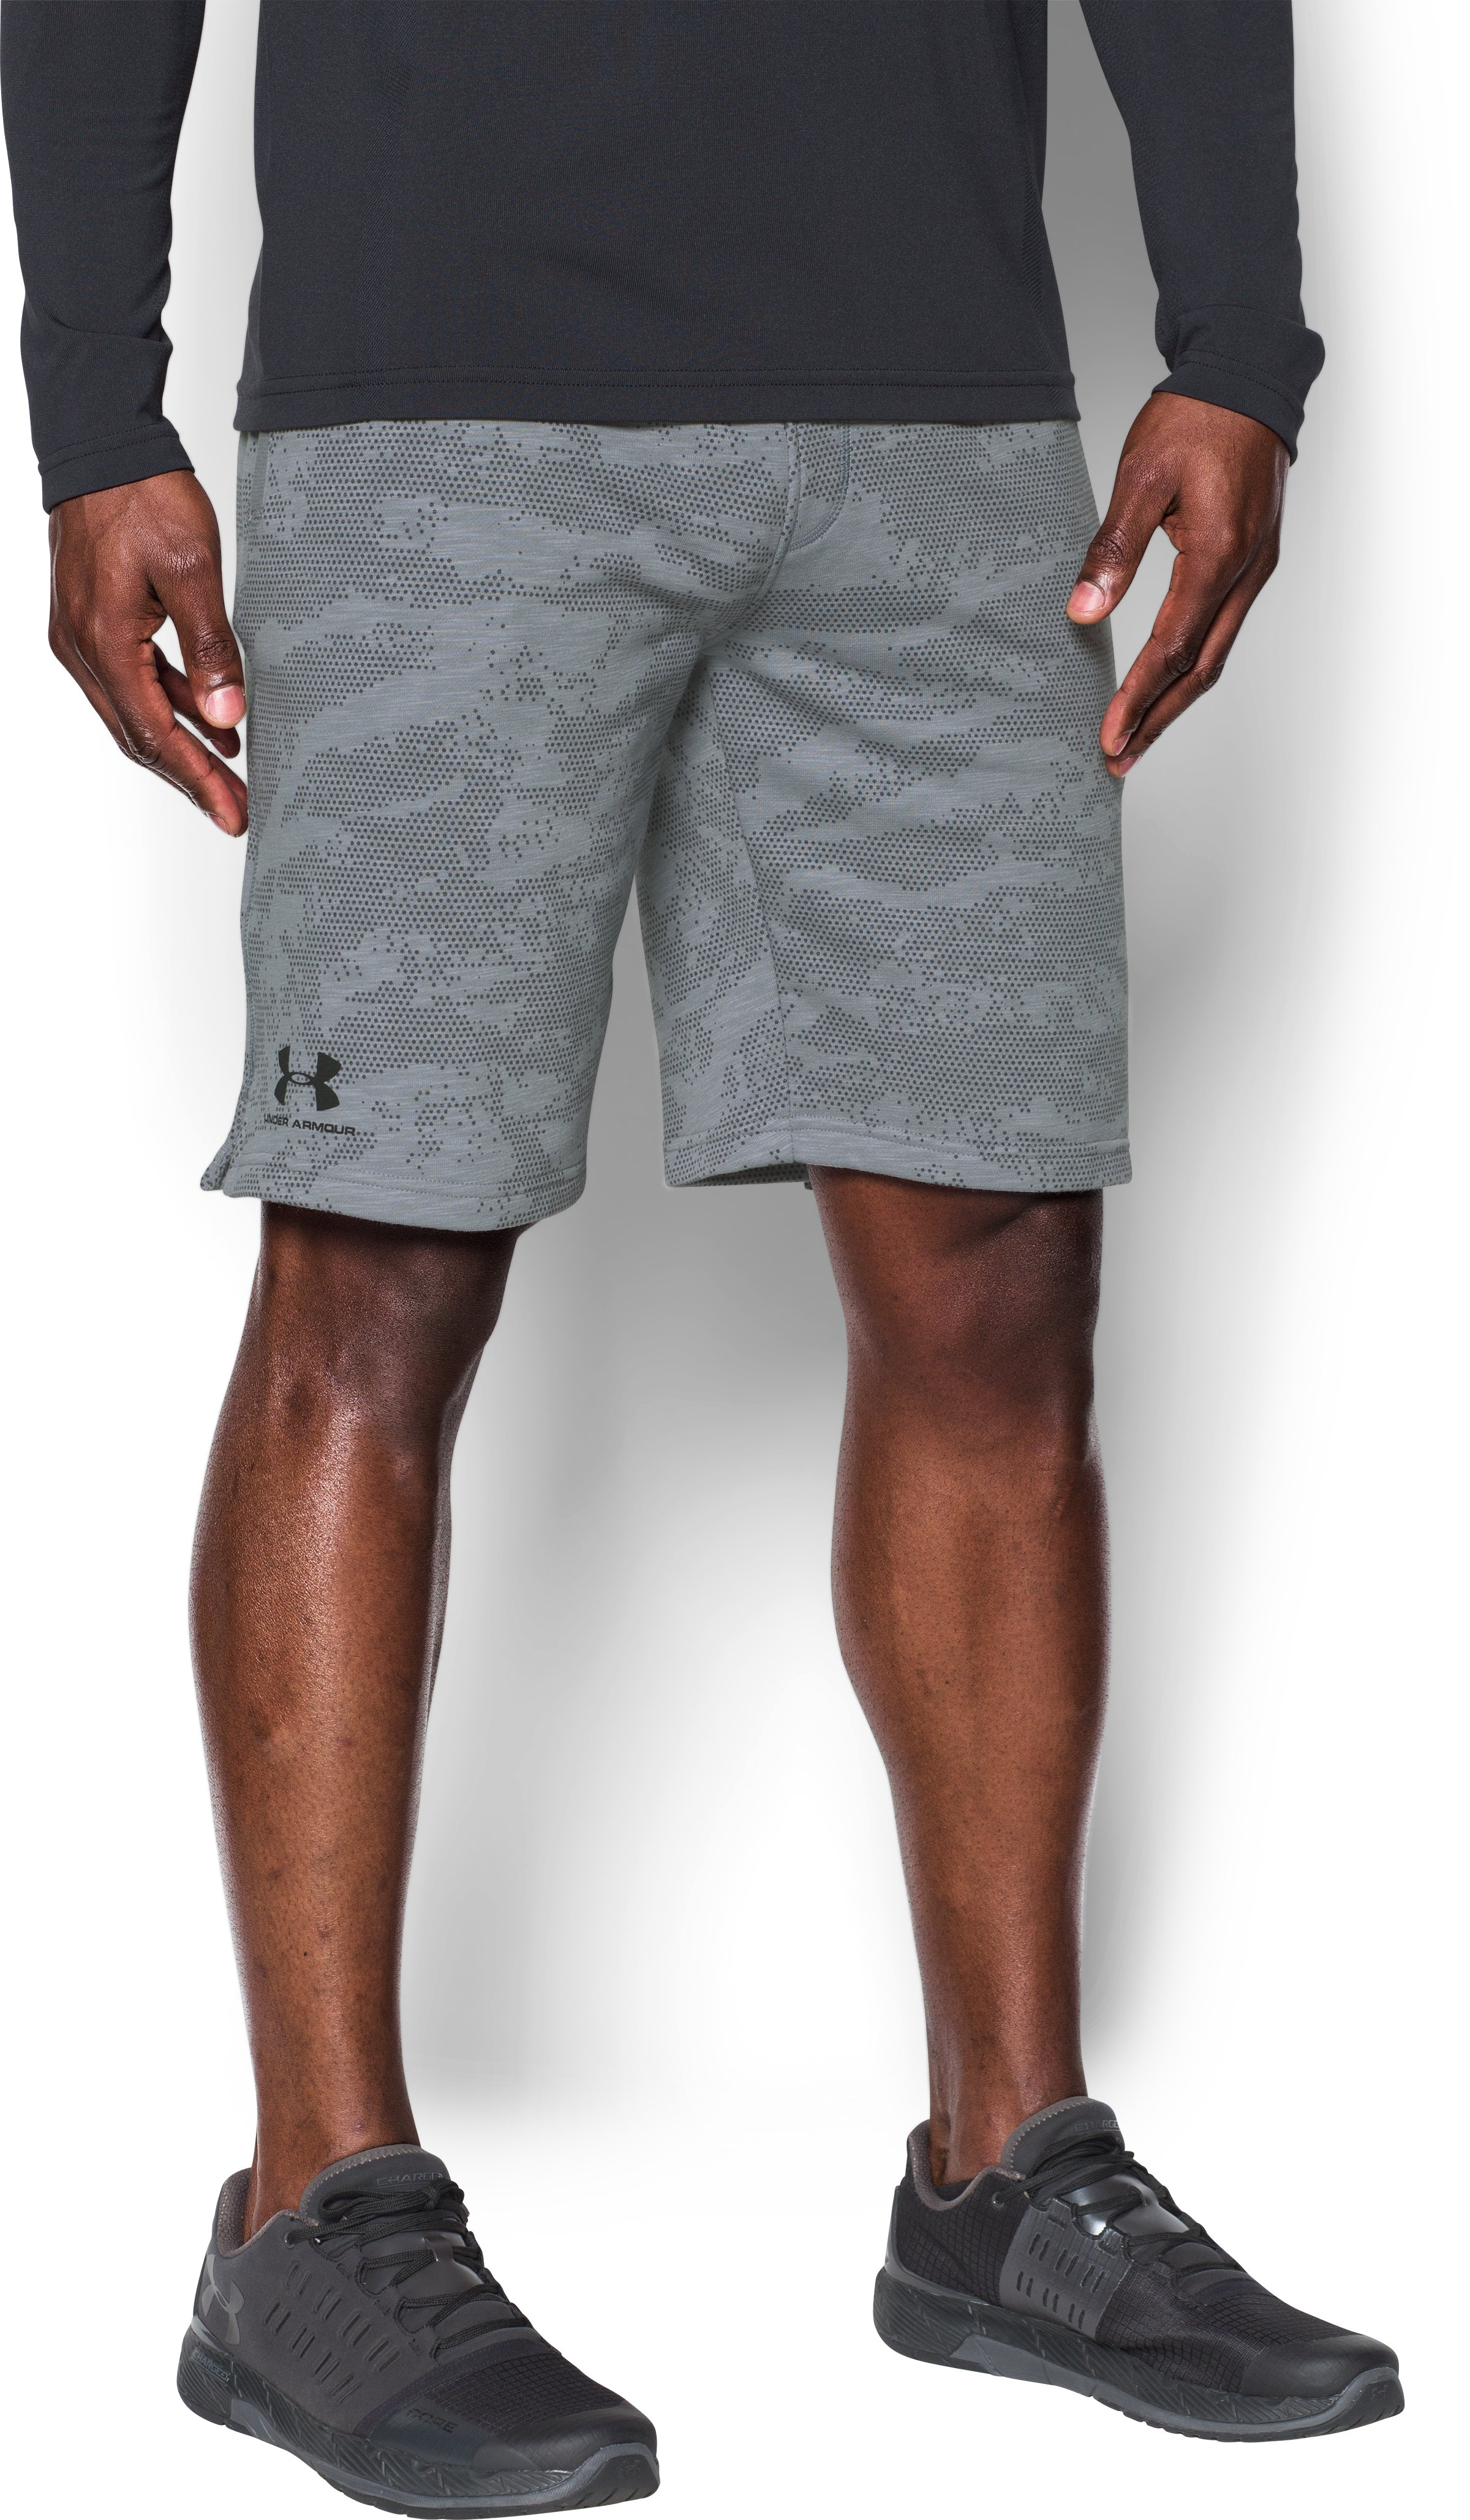 camo shorts for boys Men's UA Sportstyle Fleece Camo Shorts Real comfortable,  I like the pouch inside the pocket,  my cell Phone fits perfectly,  so when you are sitting down,  my phone doesn't fall out of my pocket....They are high quality material and are an average fit, not too loose and not too tight....Comfortable and great looking shorts